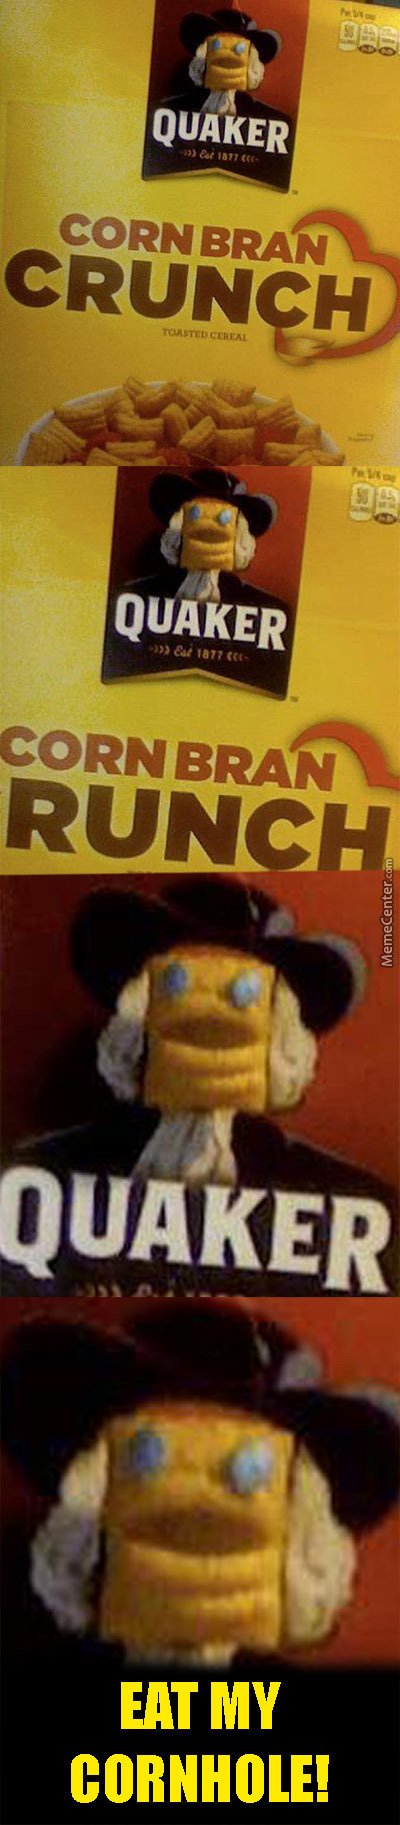 Corn Bran... Just Eat It